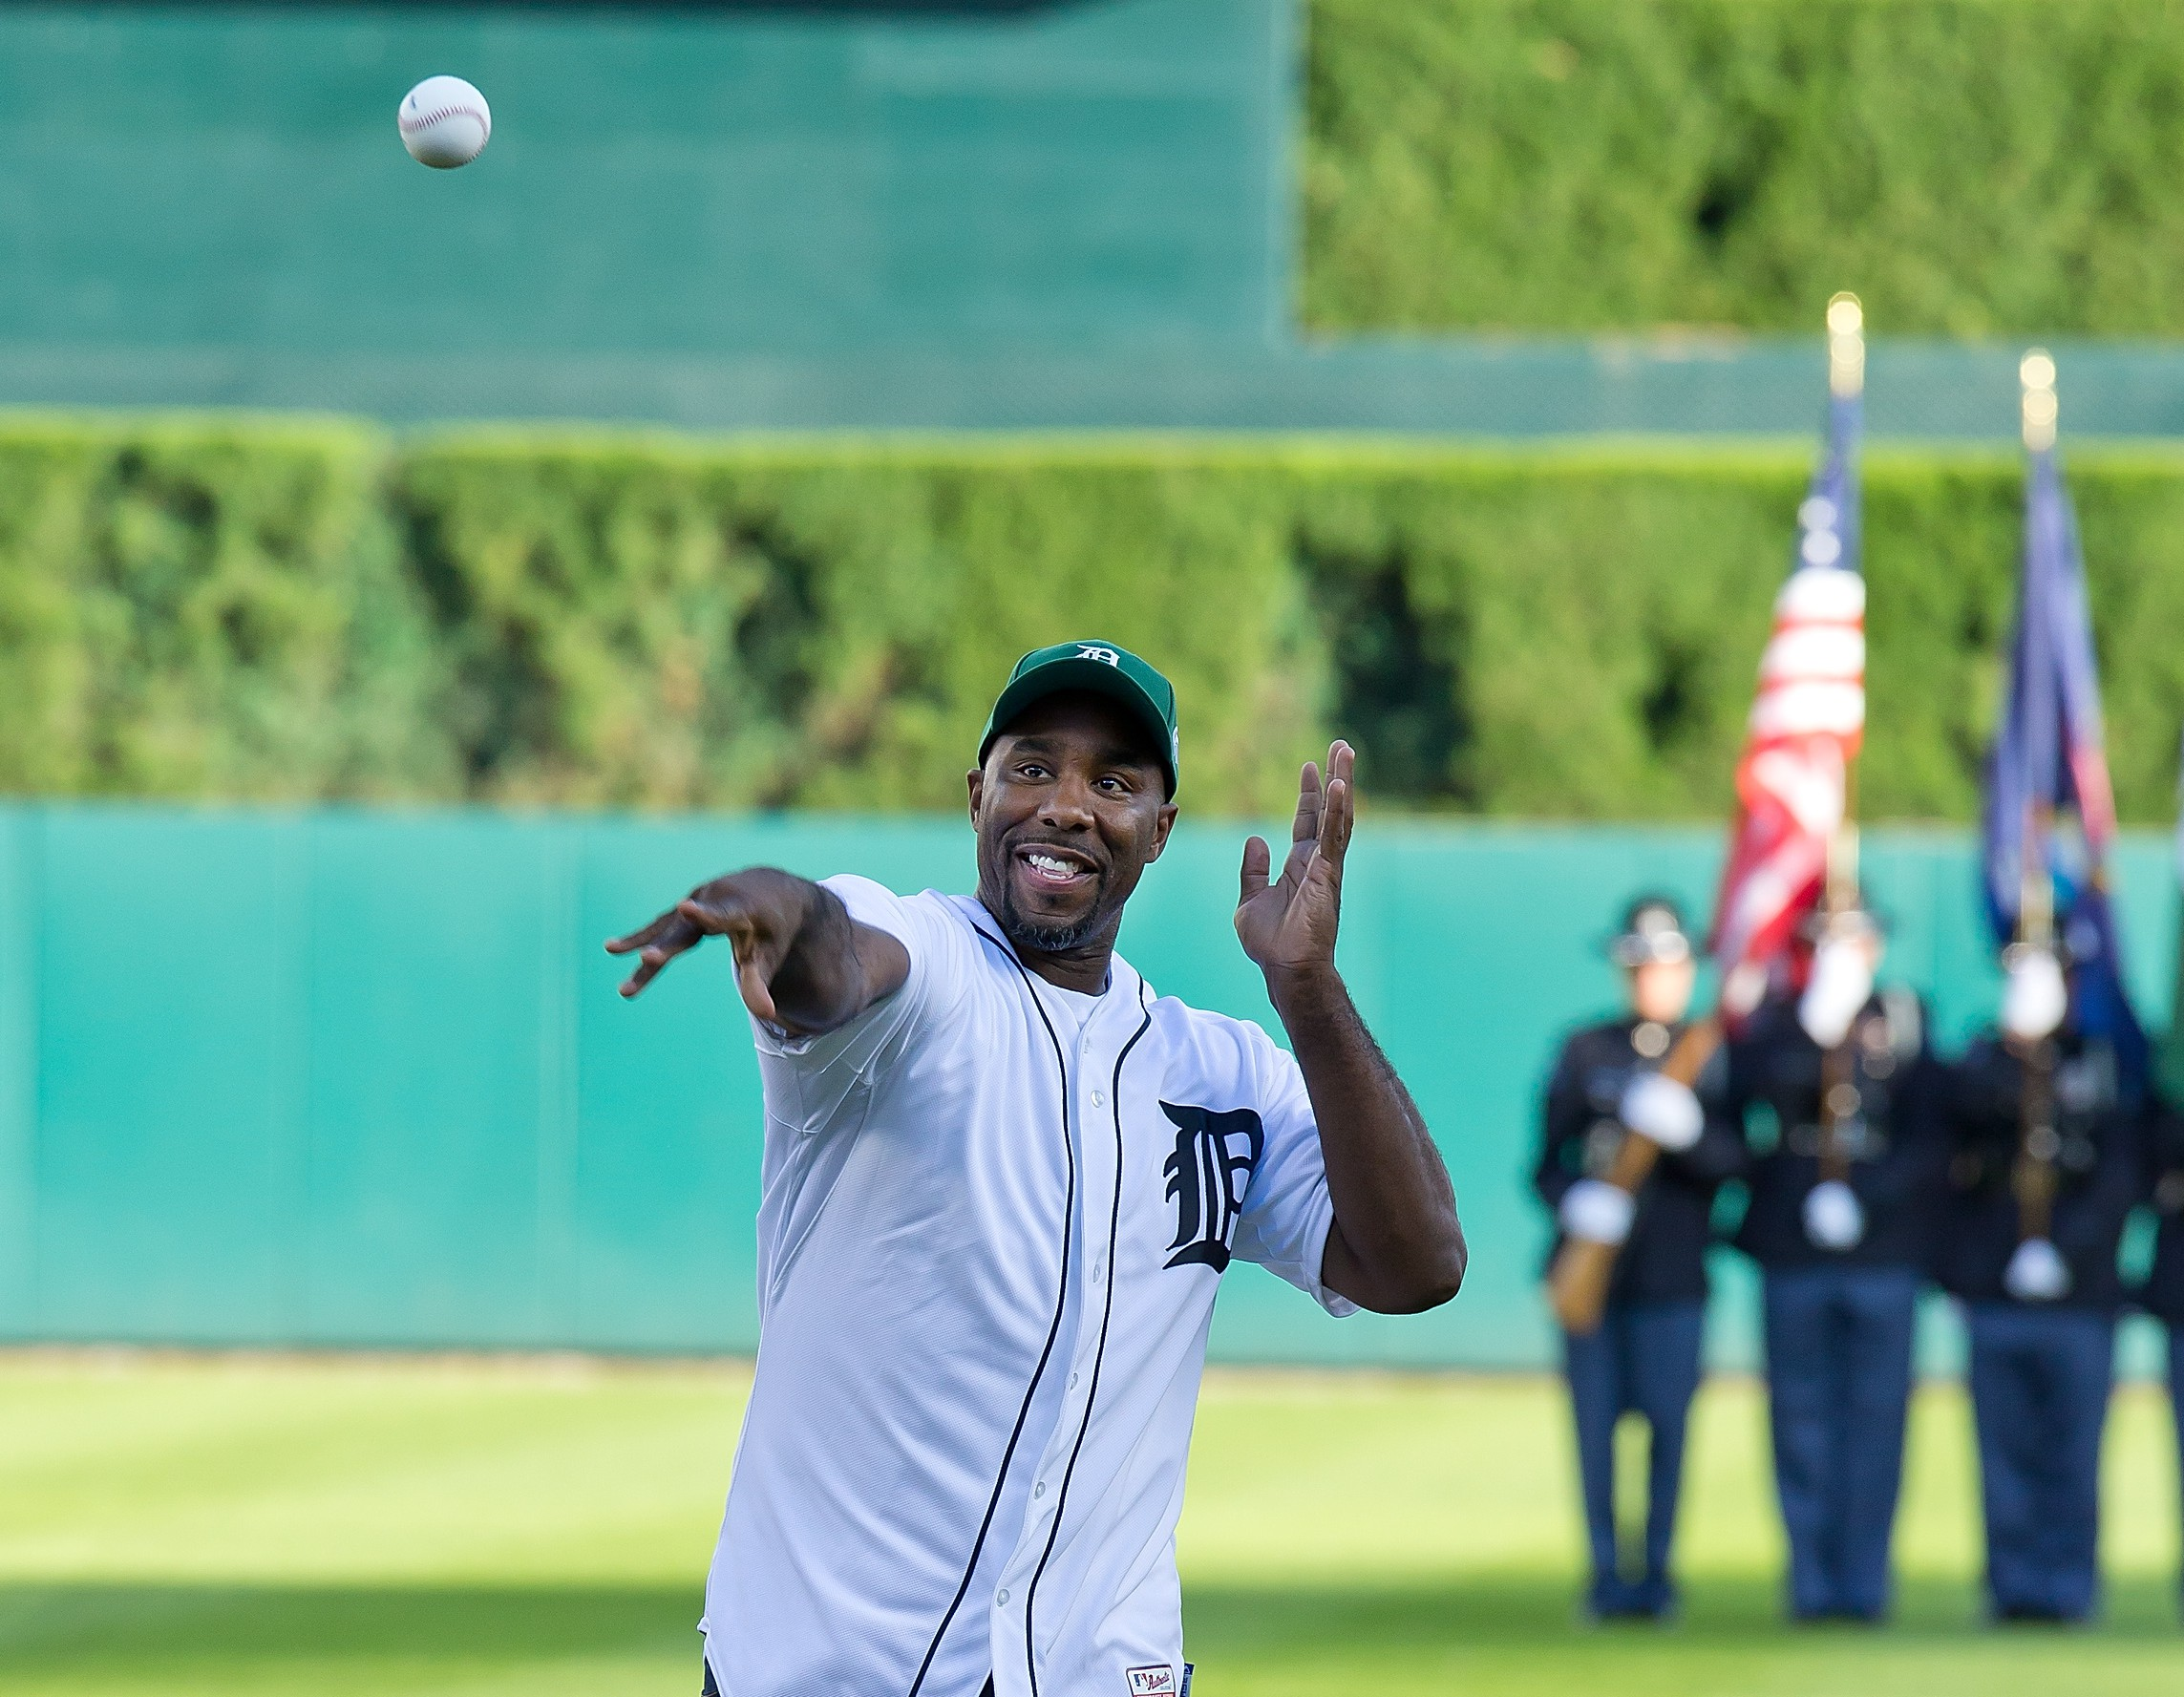 Mateen Cleaves throws out the first pitch at a Detroit Tigers game. (Getty)